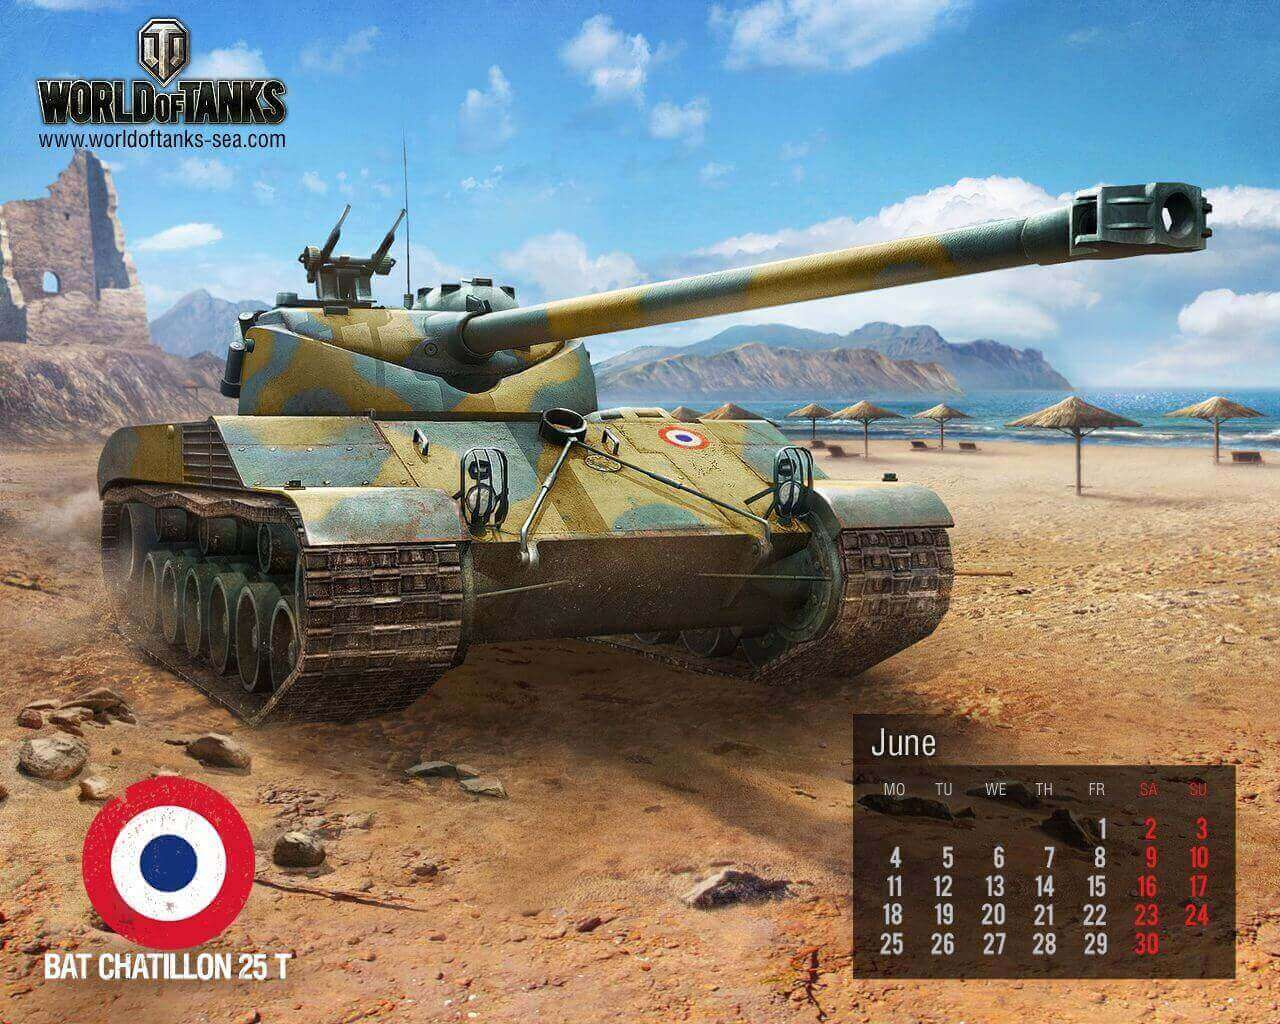 June Calendar: Bat Chattilon 25T